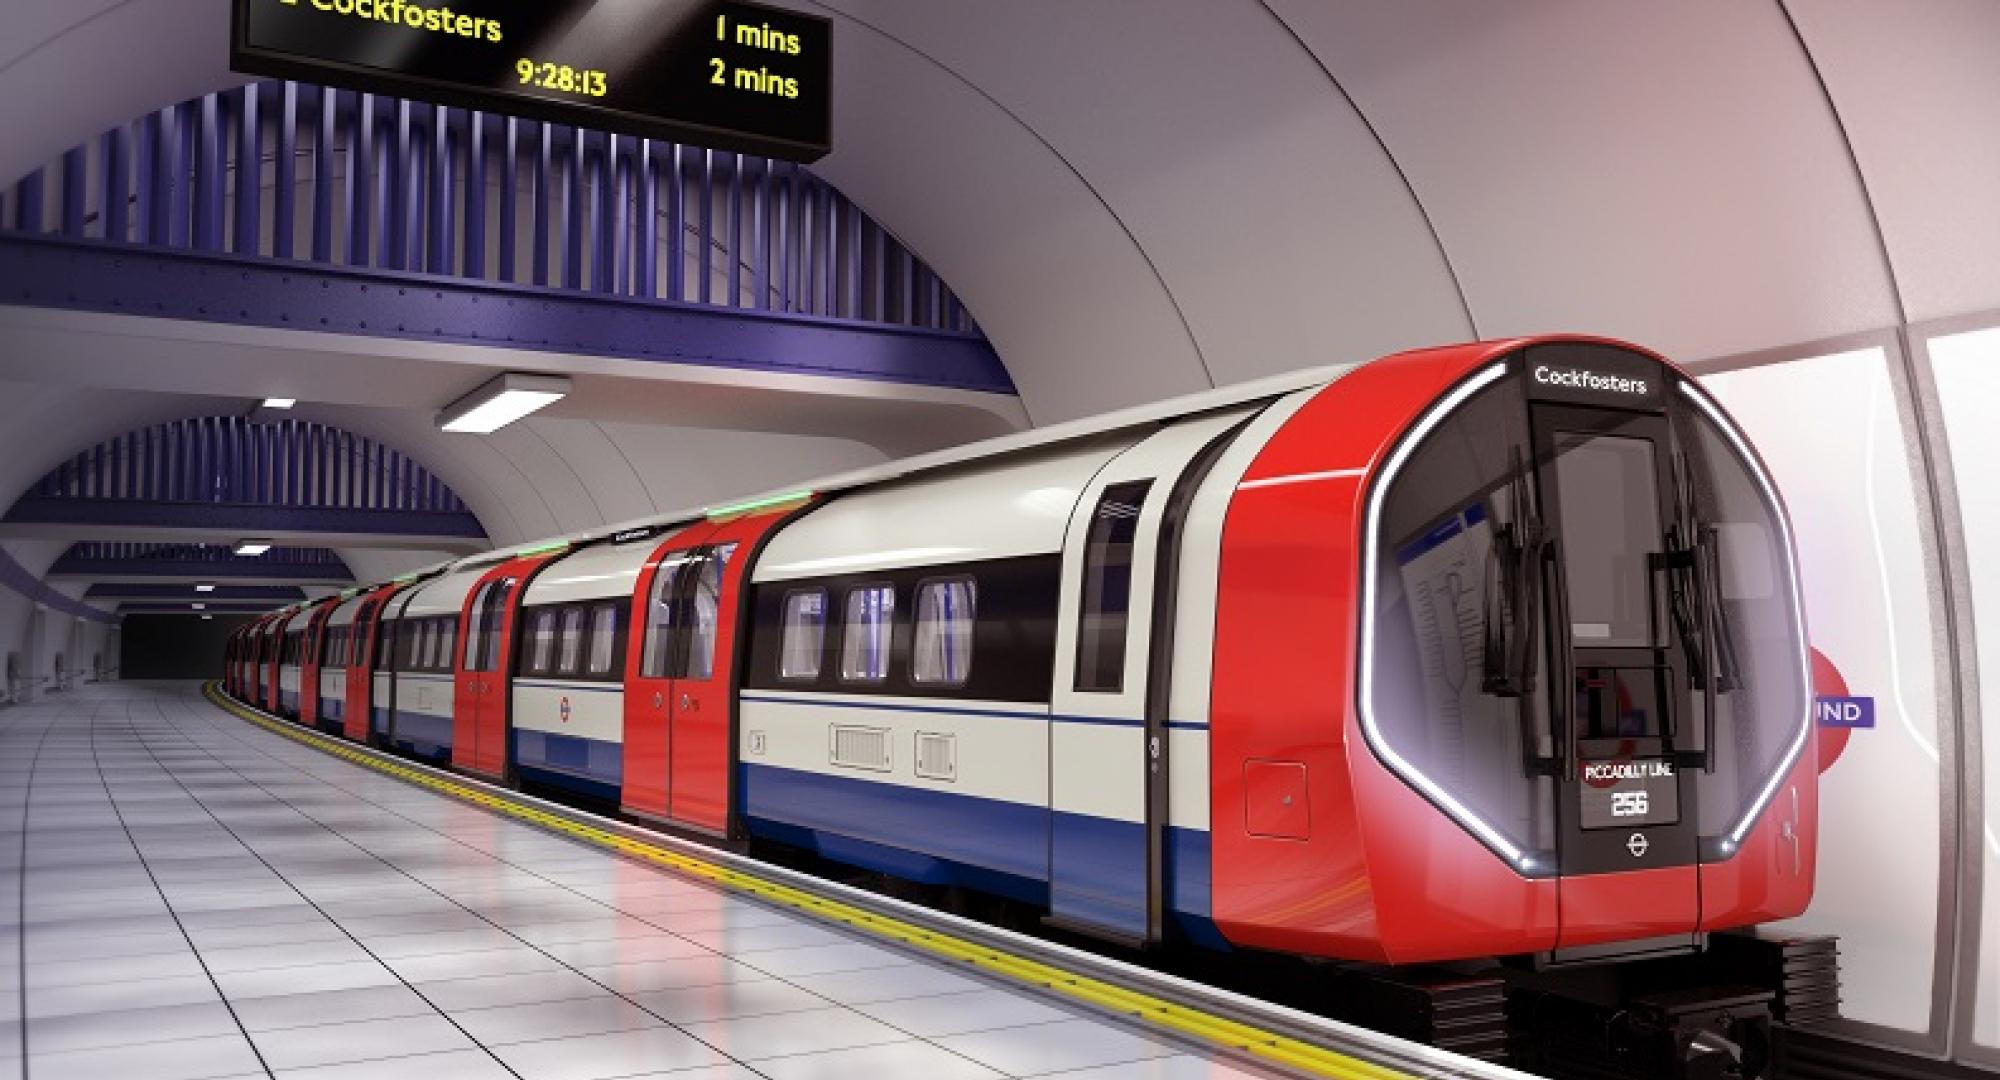 New Piccadilly Line tube train design